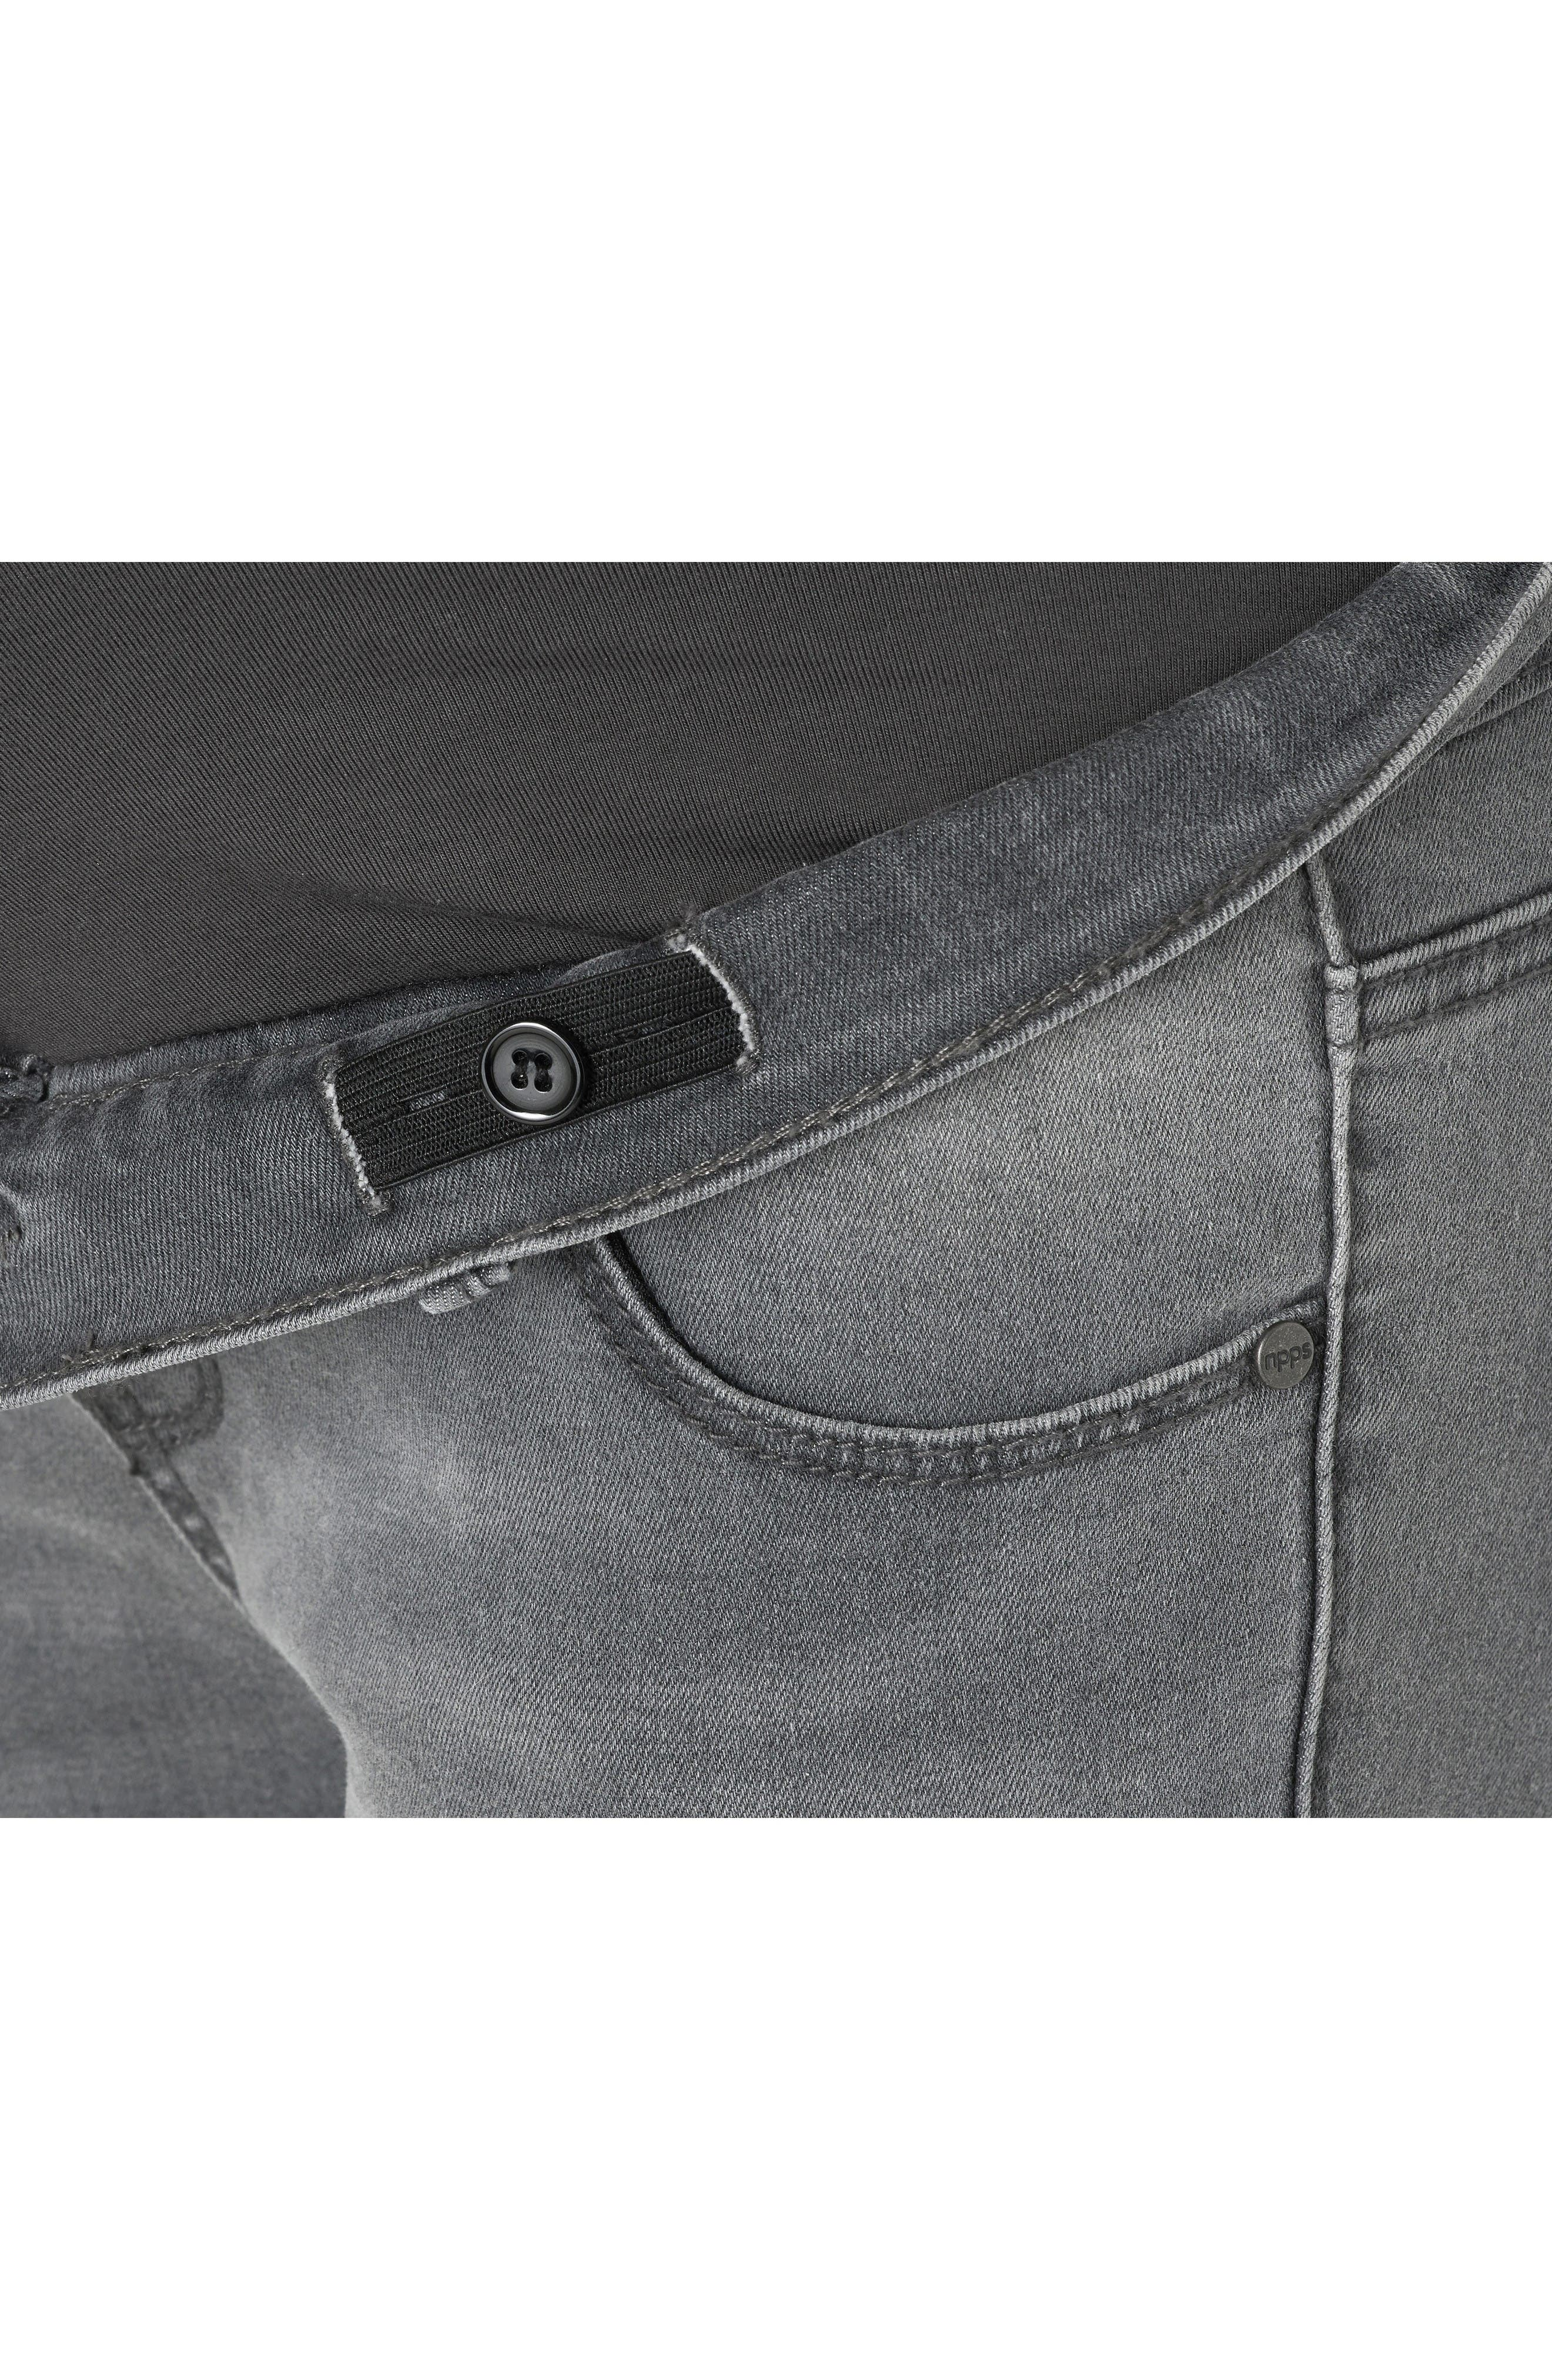 Avi Skinny Maternity Jeans,                             Alternate thumbnail 4, color,                             Grey Denim